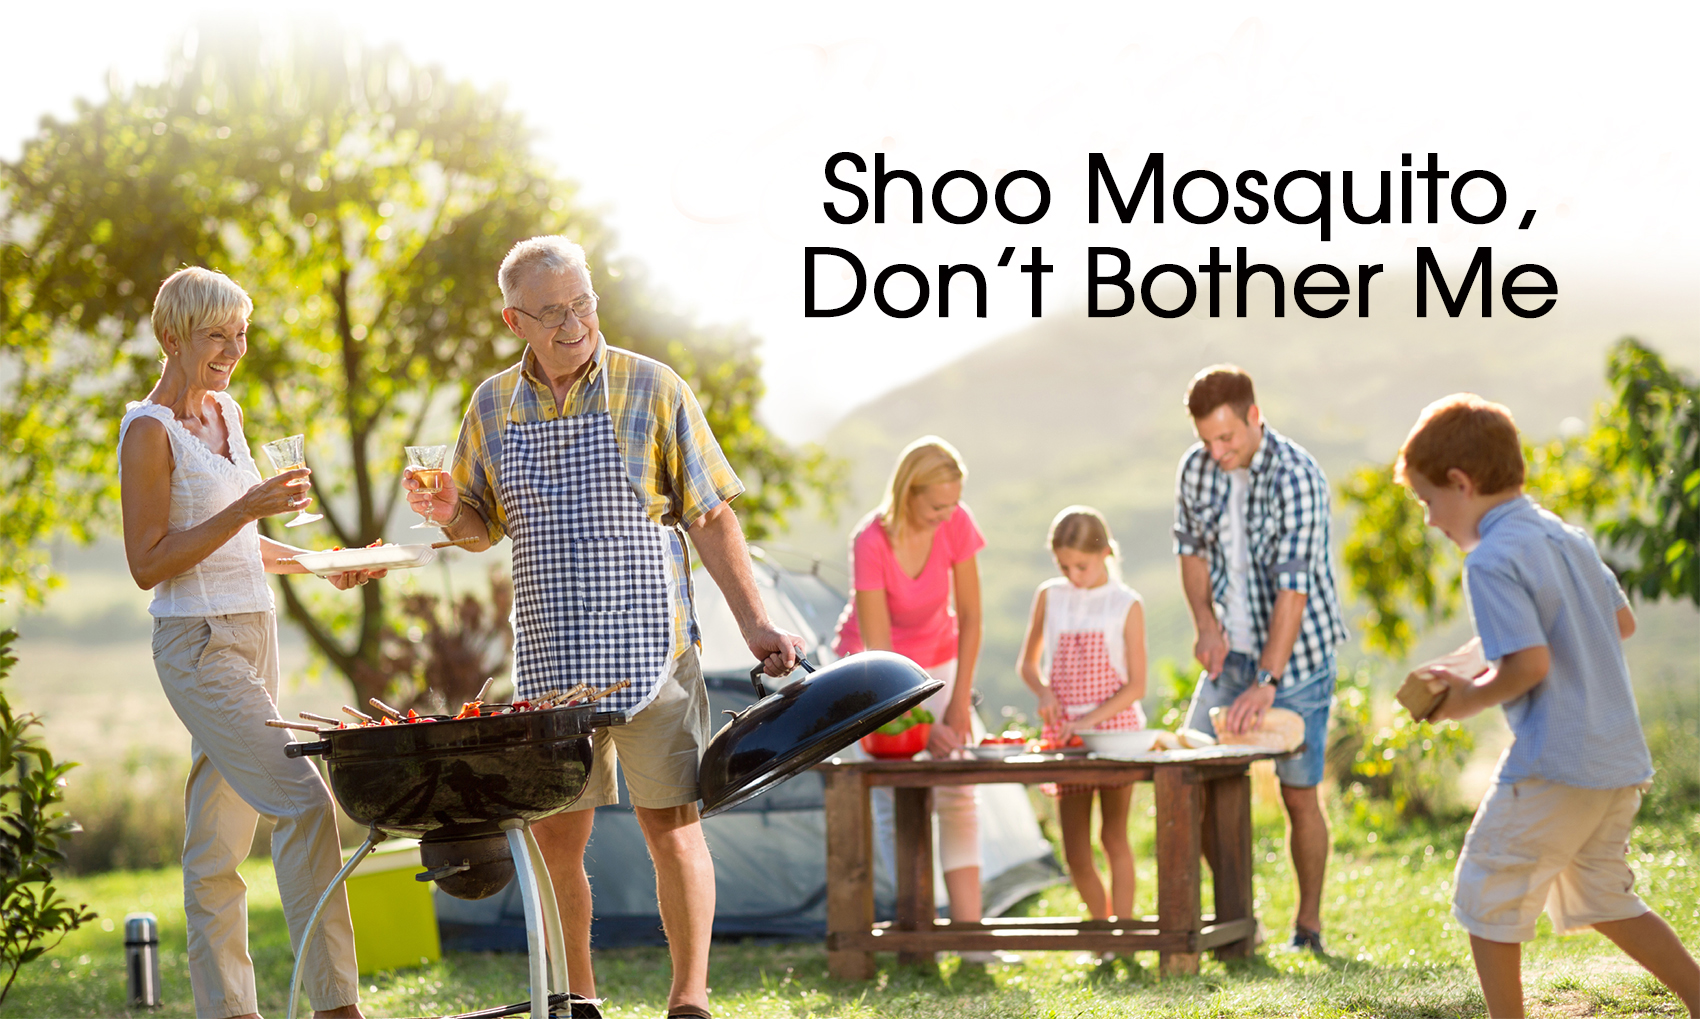 Shoo Mosquito, Don't Bother Me